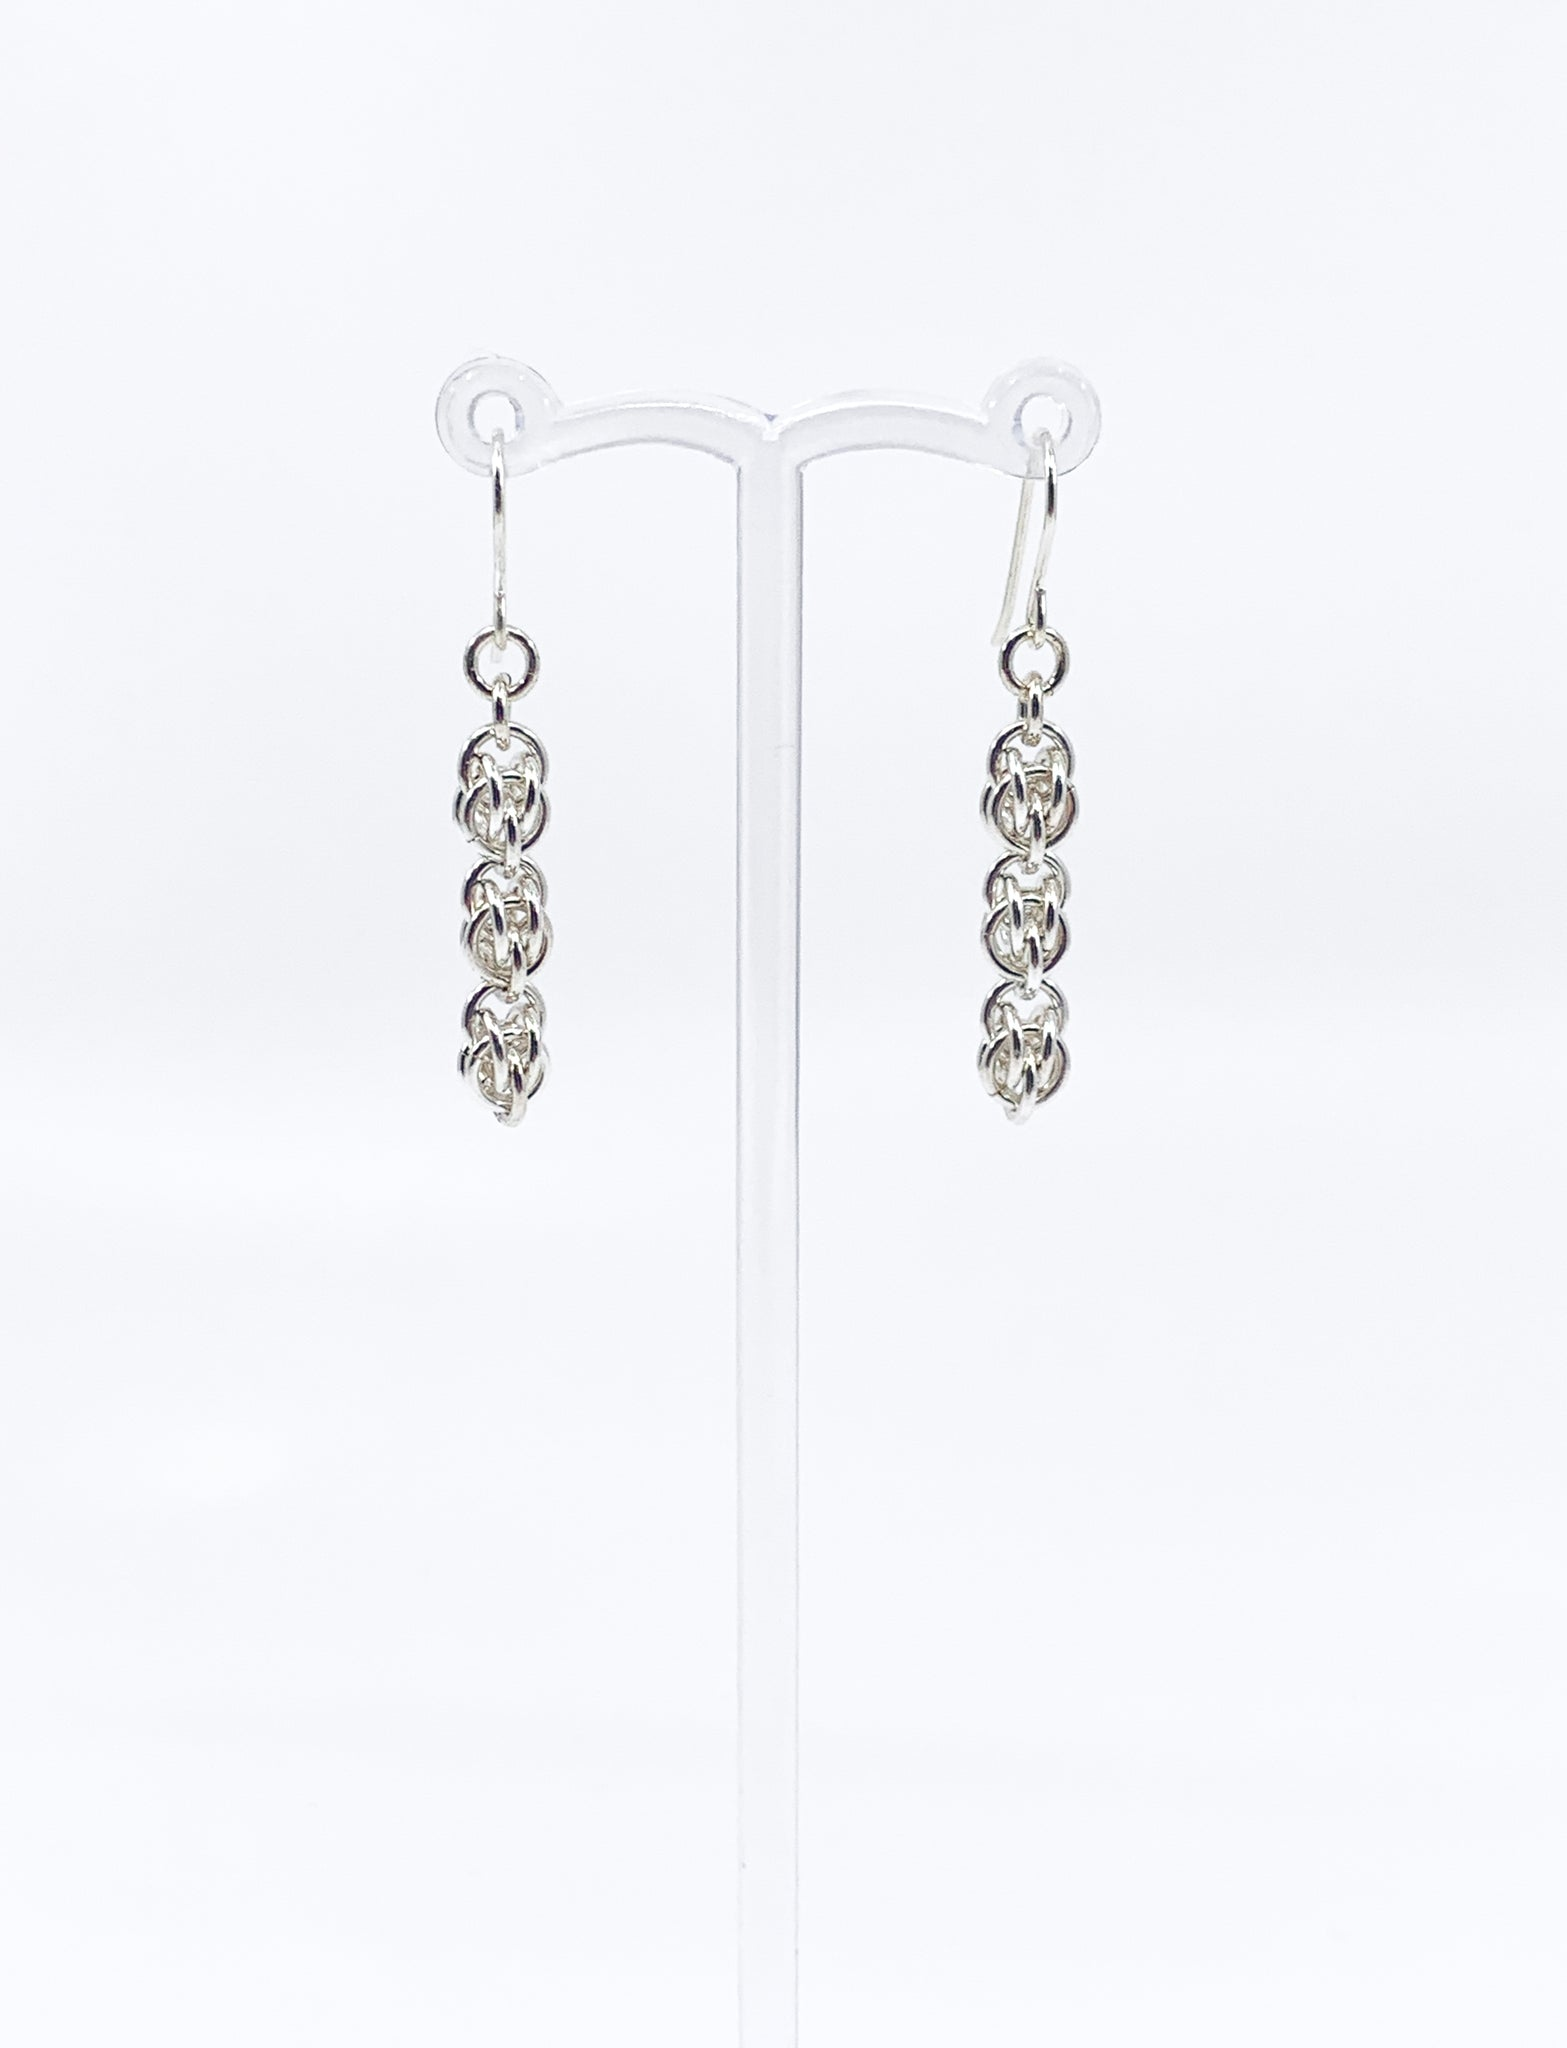 'Chloe' 3 Silver earrings